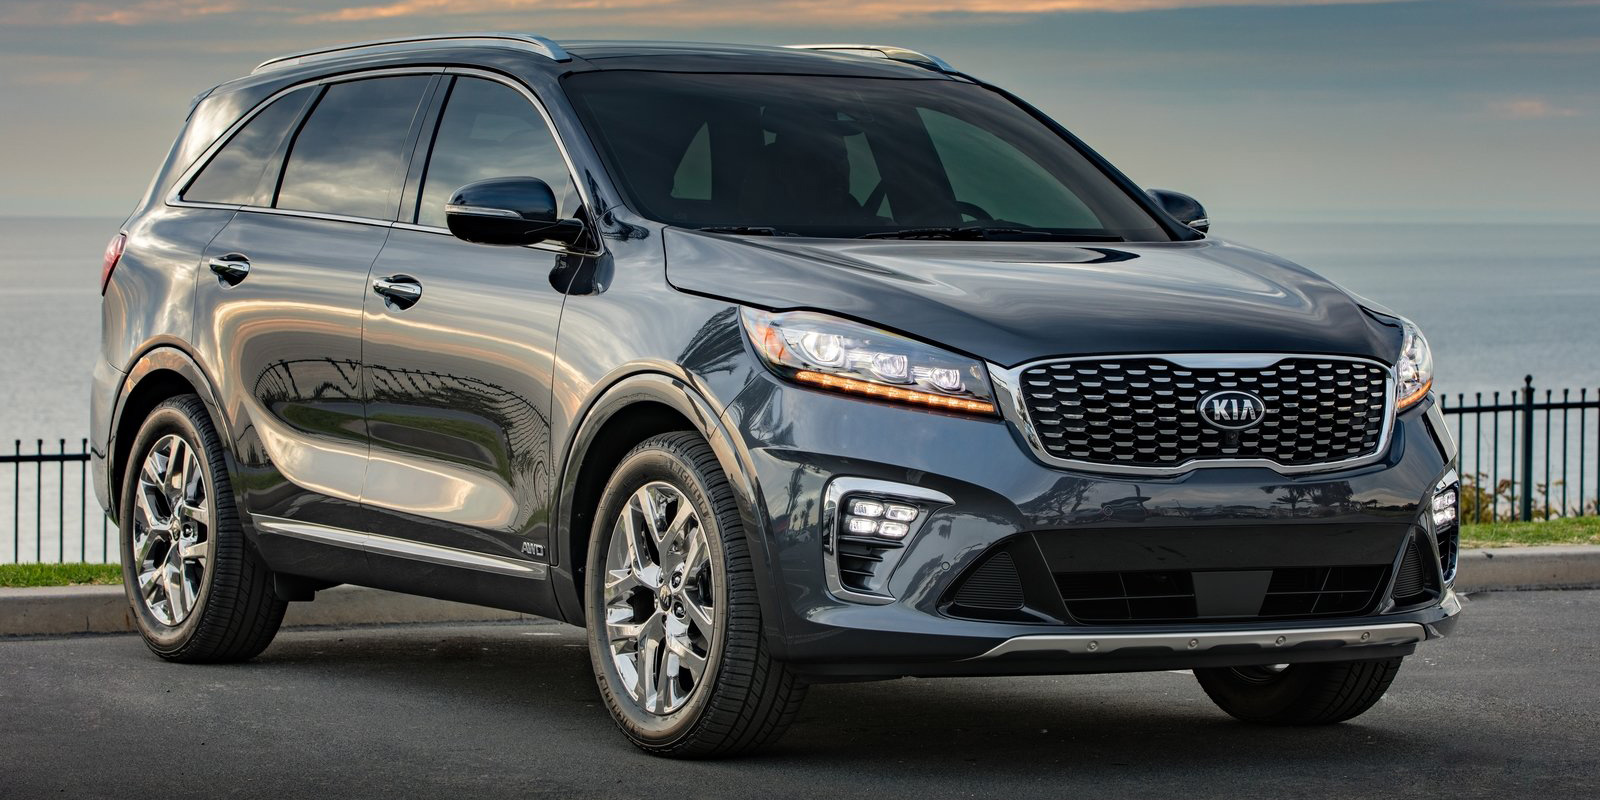 54 The Best 2020 Kia Sorento Specs